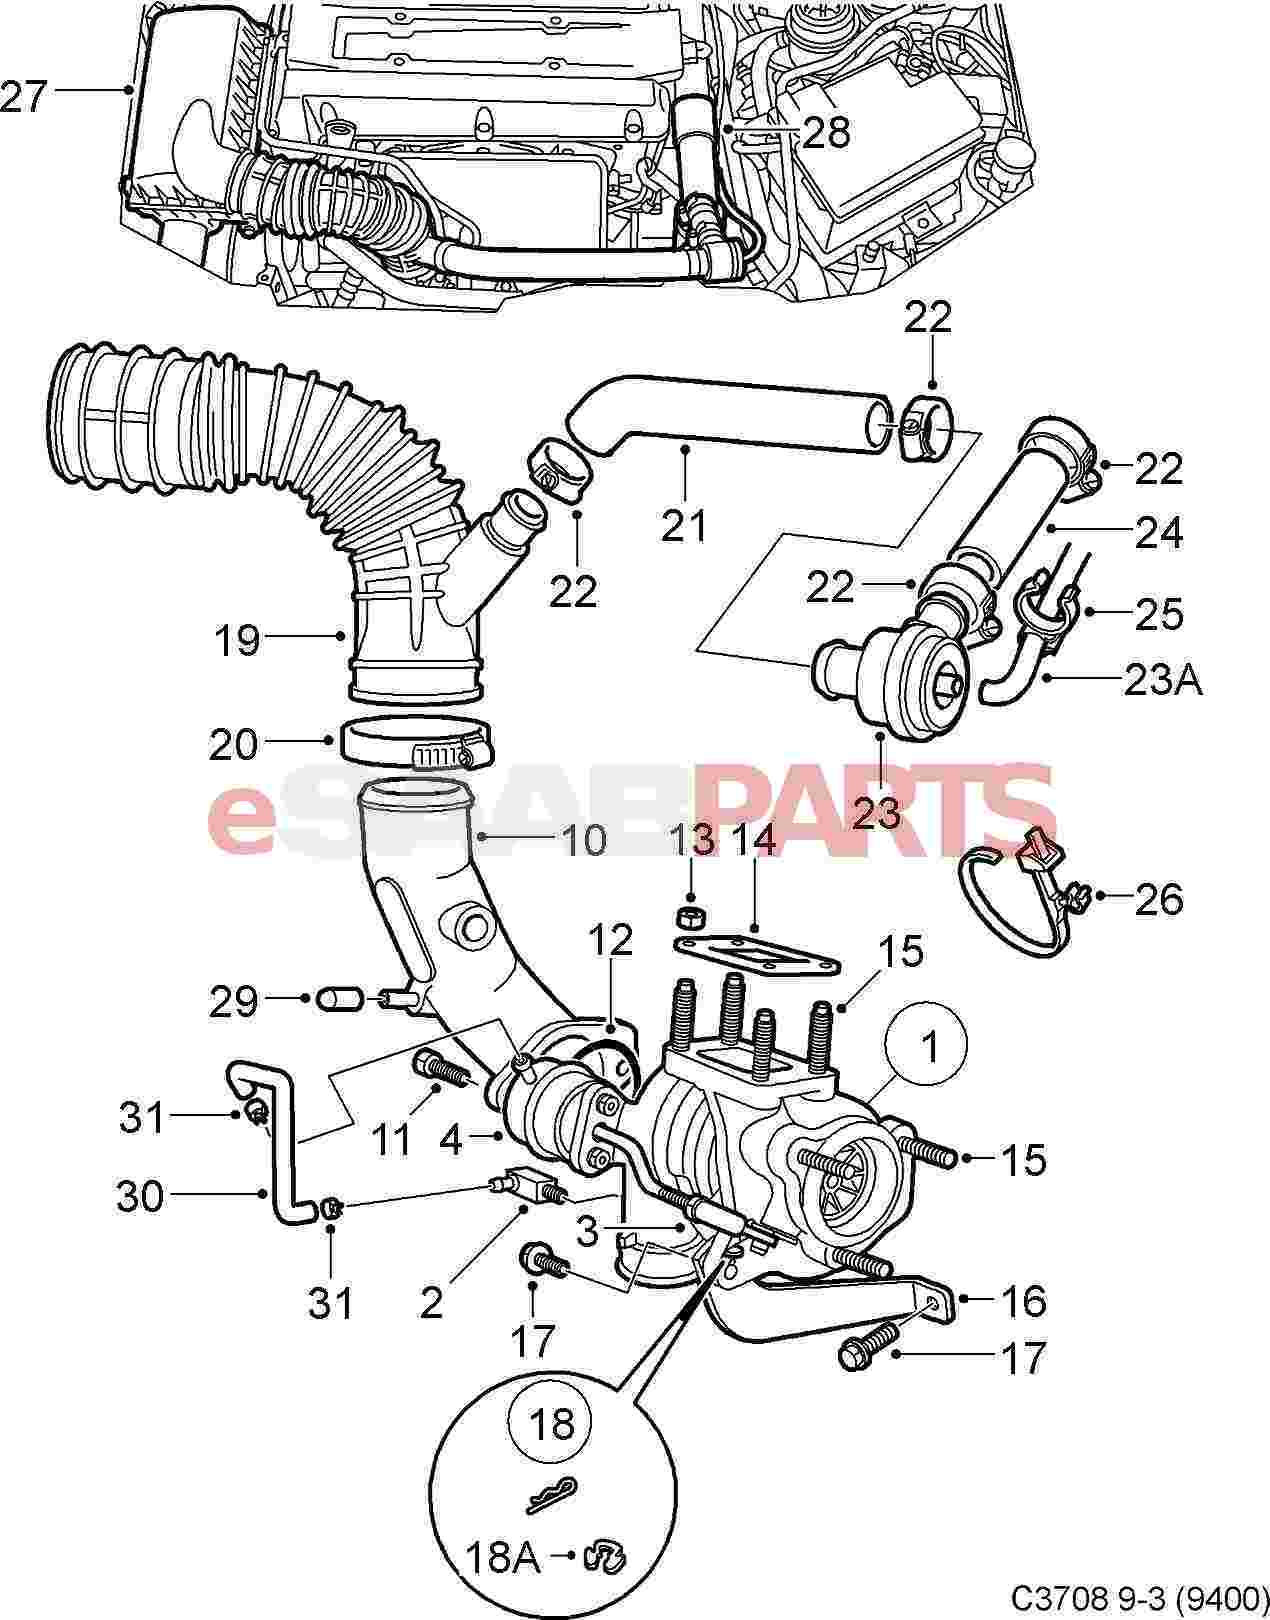 saab 9 3 engine diagram 4 way pressure clamp system 2 ecotec and wiring